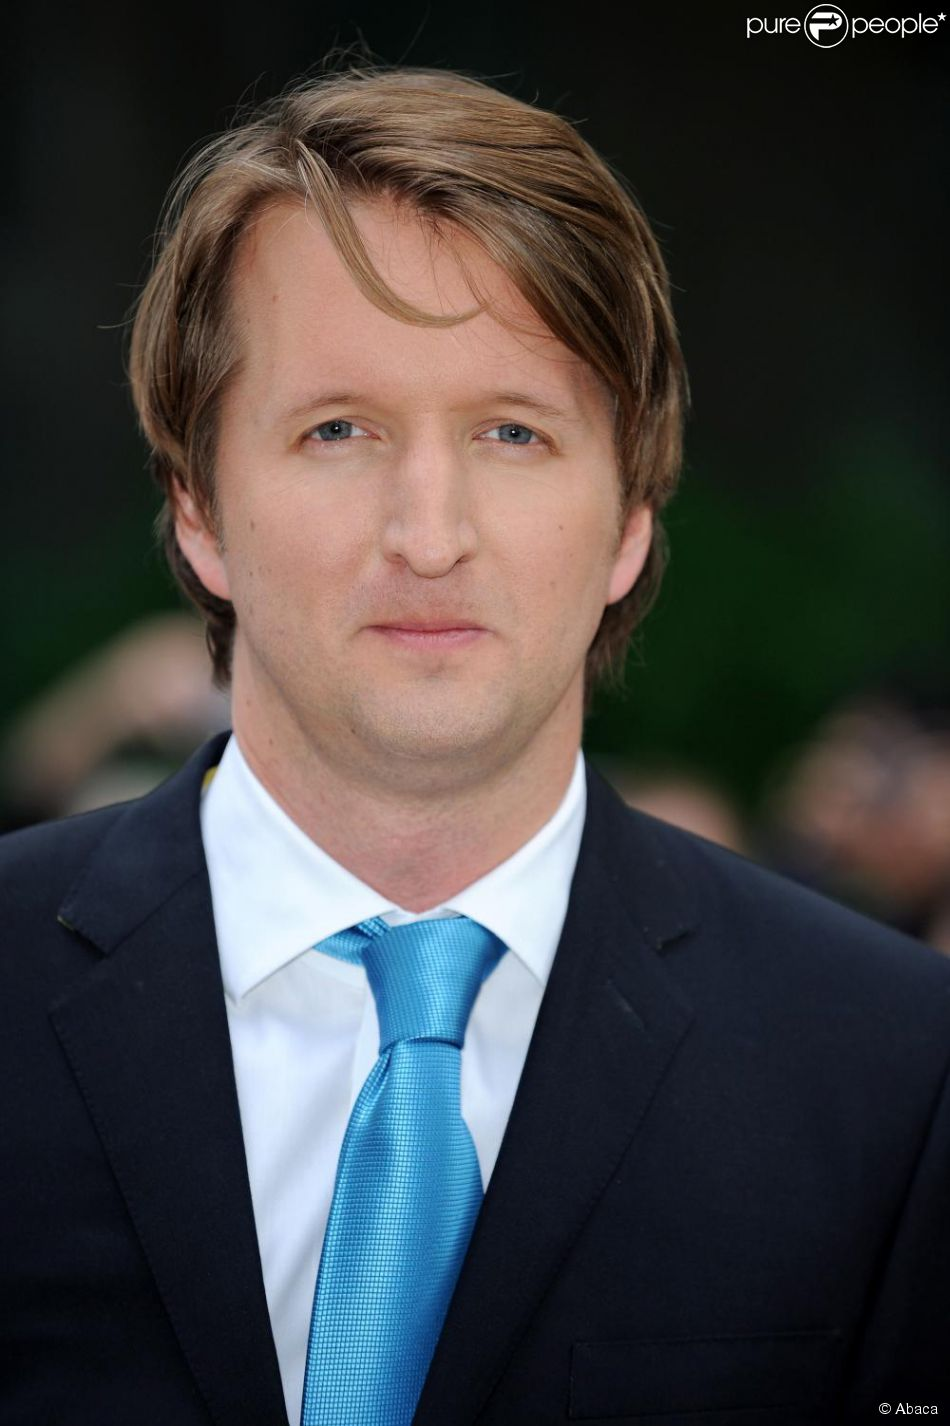 tom hooper les miserablestom hooper lunettes, tom hooper twitter, tom hooper movies, tom hooper soccer, tom hooper les miserables, tom hooper director, том хупер фильмография, tom hooper wikipedia, tom hooper, tom hooper imdb, tom hopper footballer, tom hooper wiki, tom hooper films, tom hooper the danish girl, tom hooper oscar, tom hooper football, tom hopper actor, tom hopper height, tom hooper contact, tom hooper biography